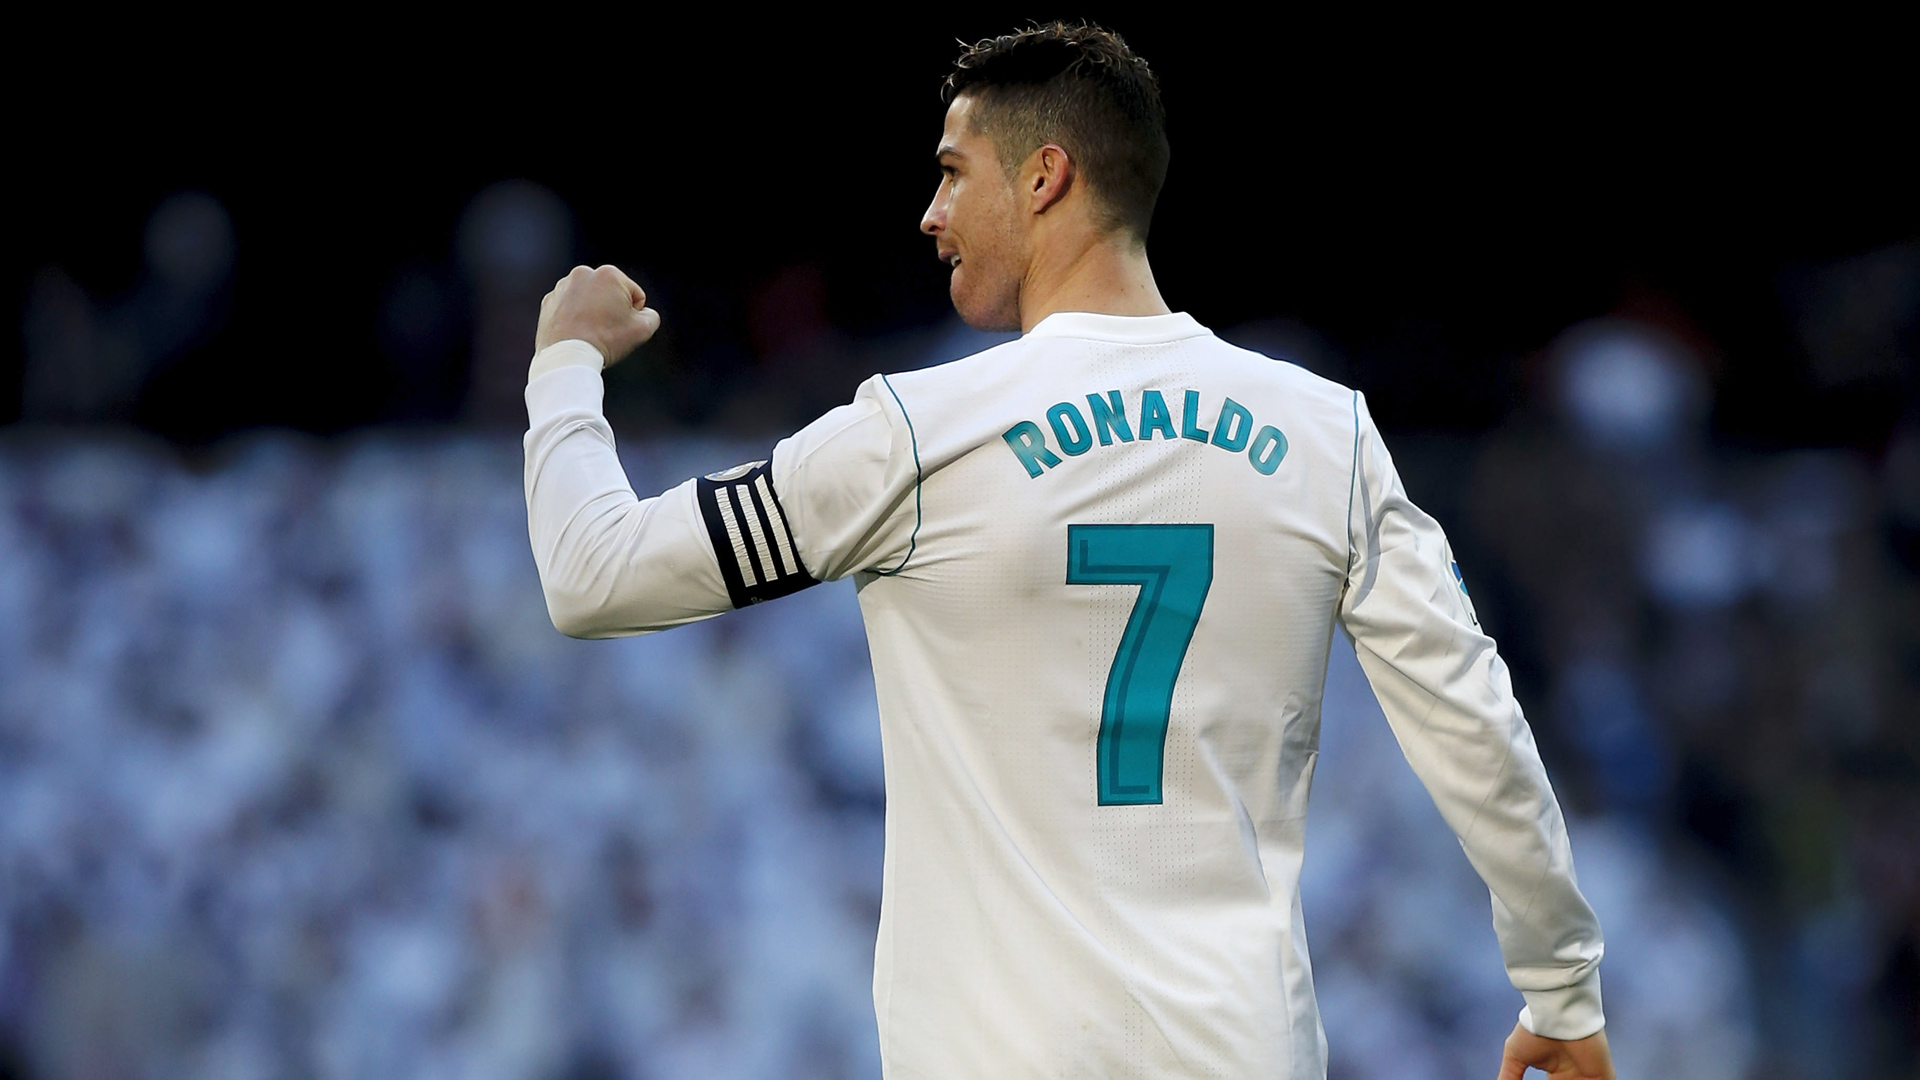 Real Madrid Cristiano Ronaldo 24022018